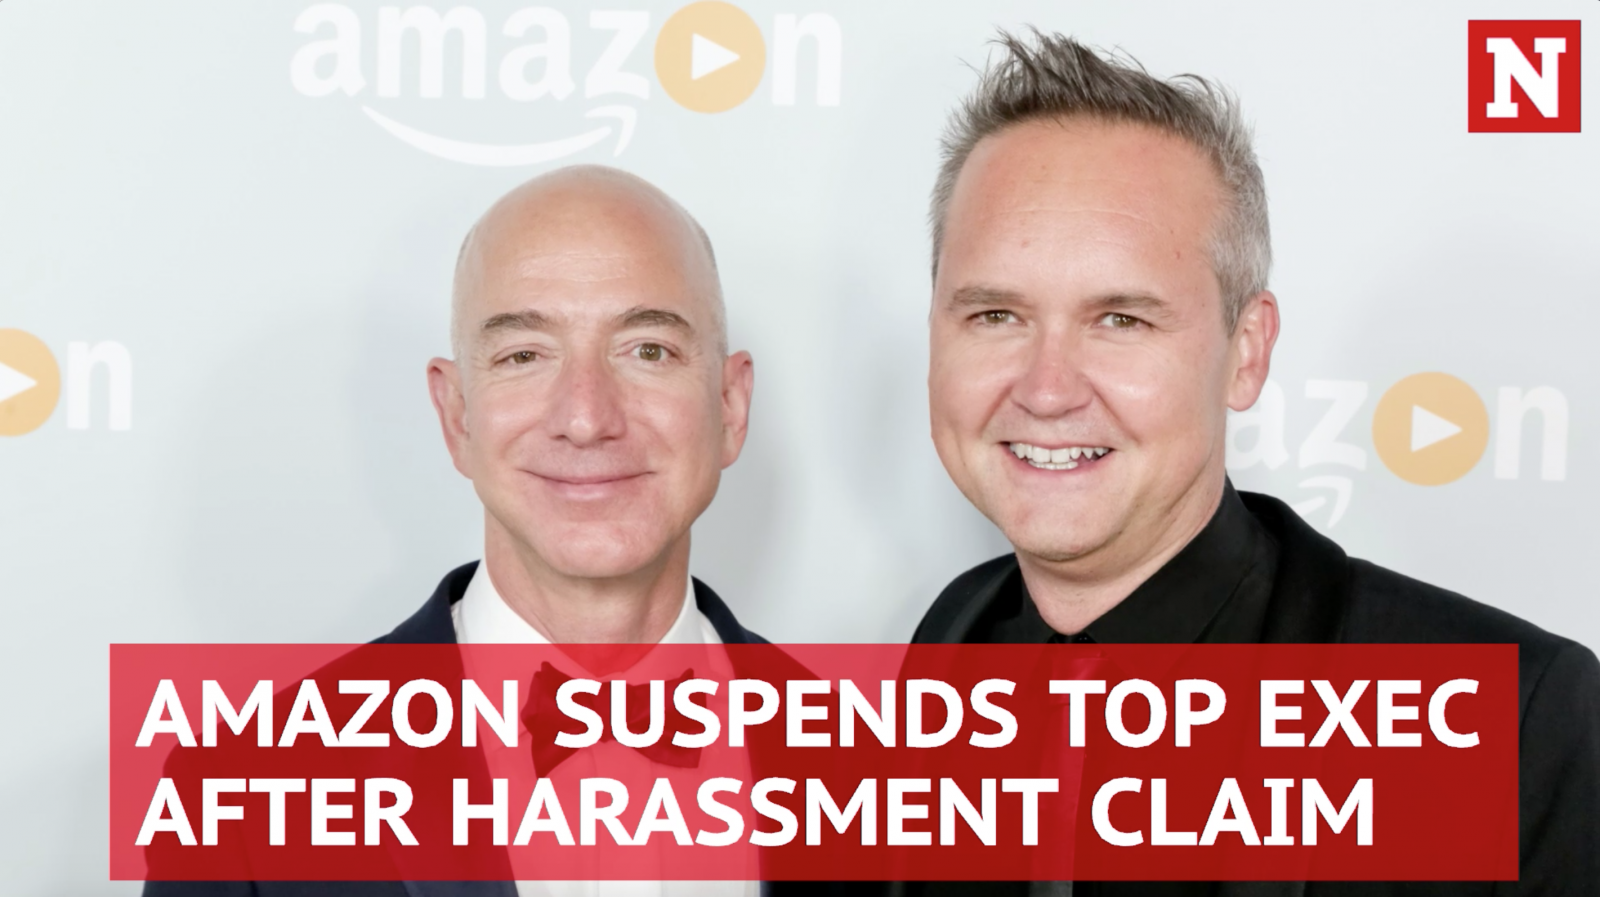 amazon-exec-suspended-amid-harassment-claim-rose-mcgowans-harvey-weinstein-rape-allegation